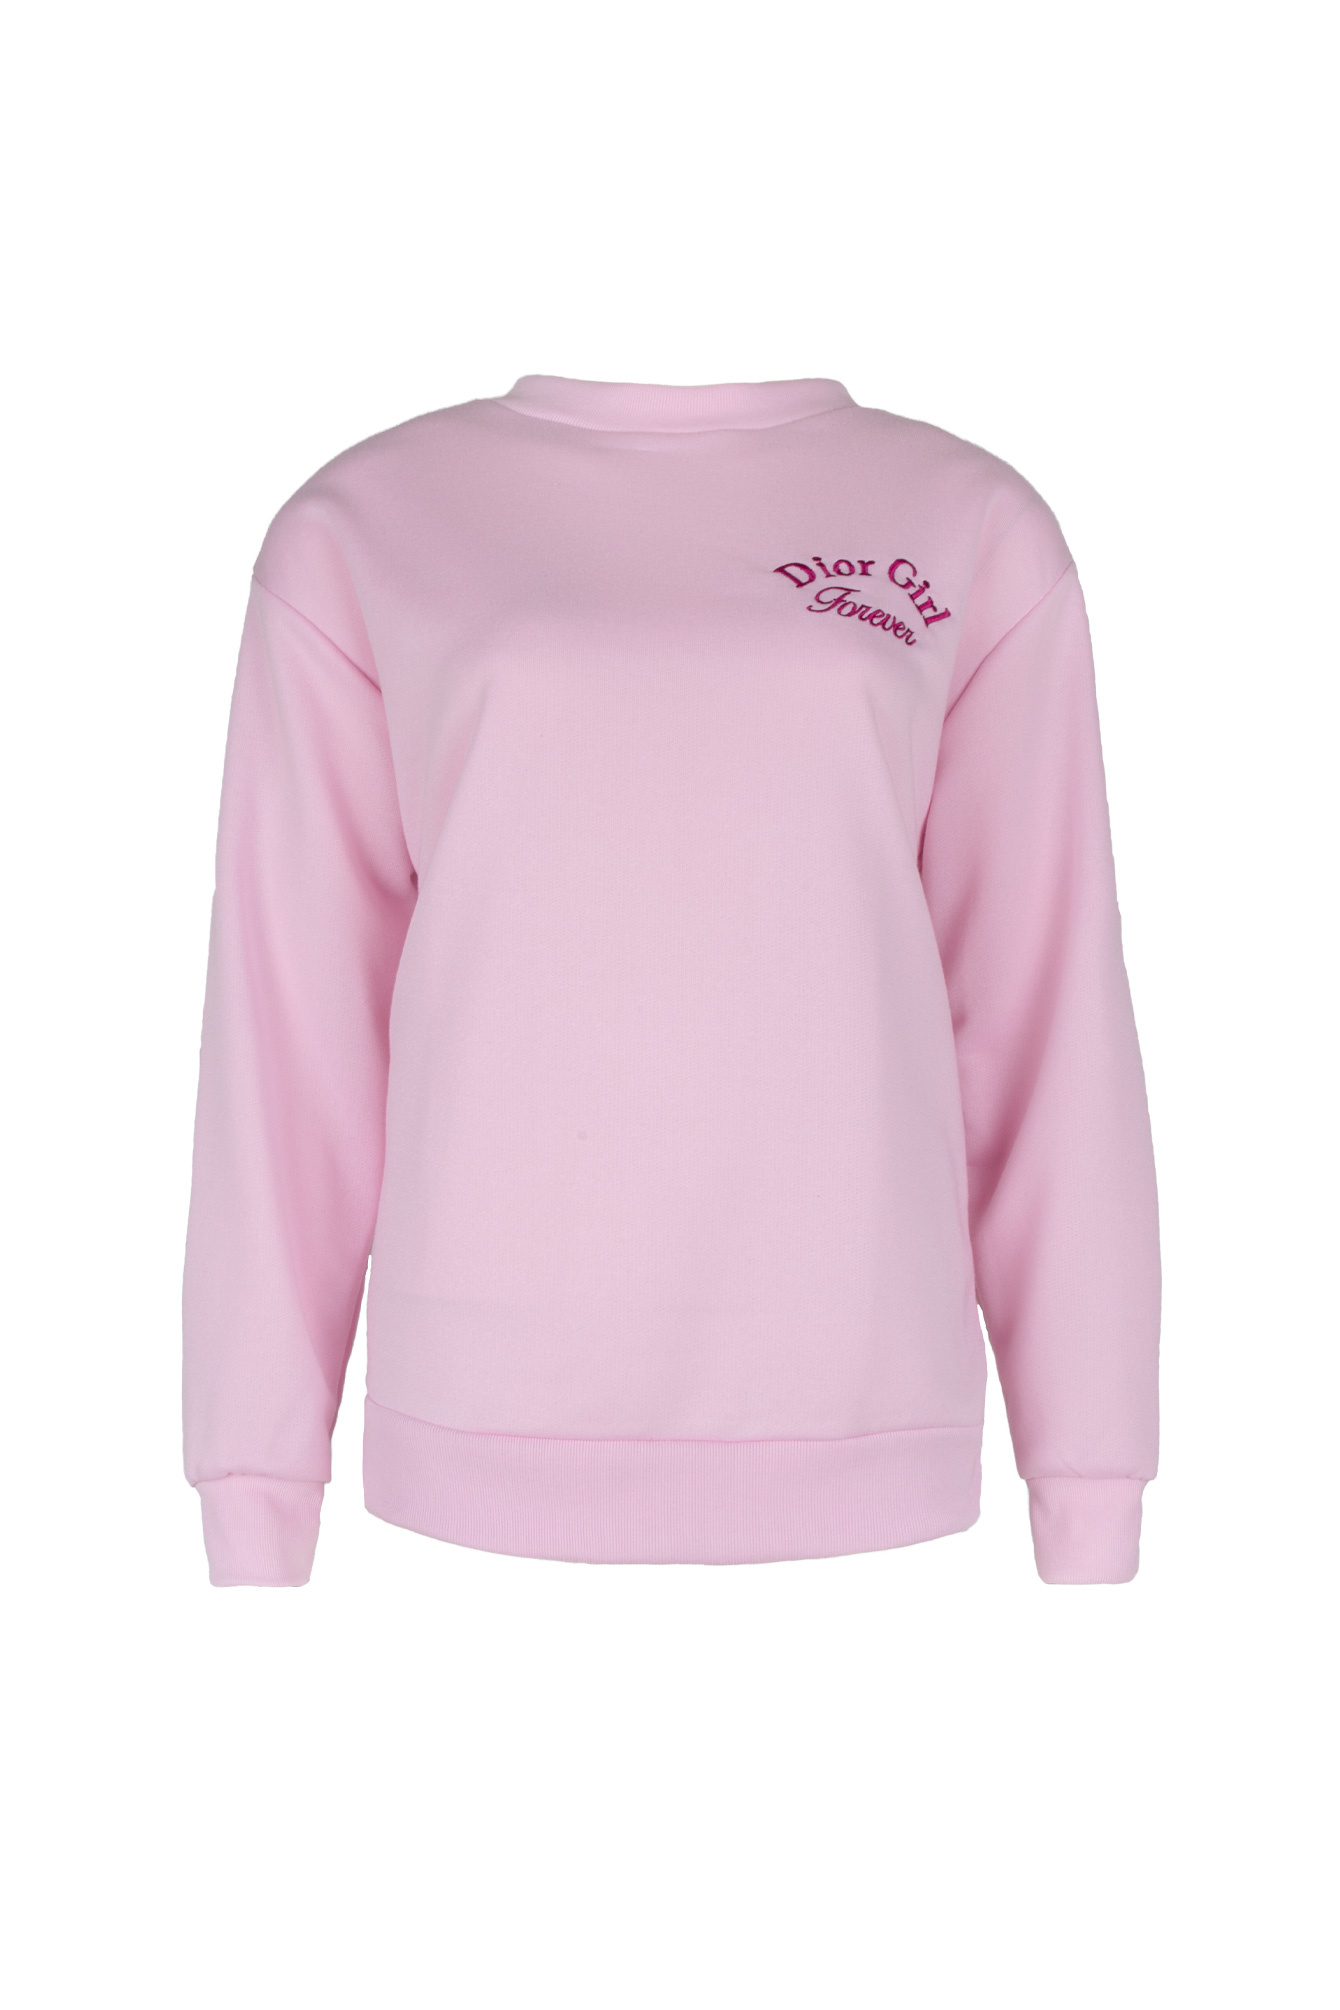 D Girl Forever sweater pink